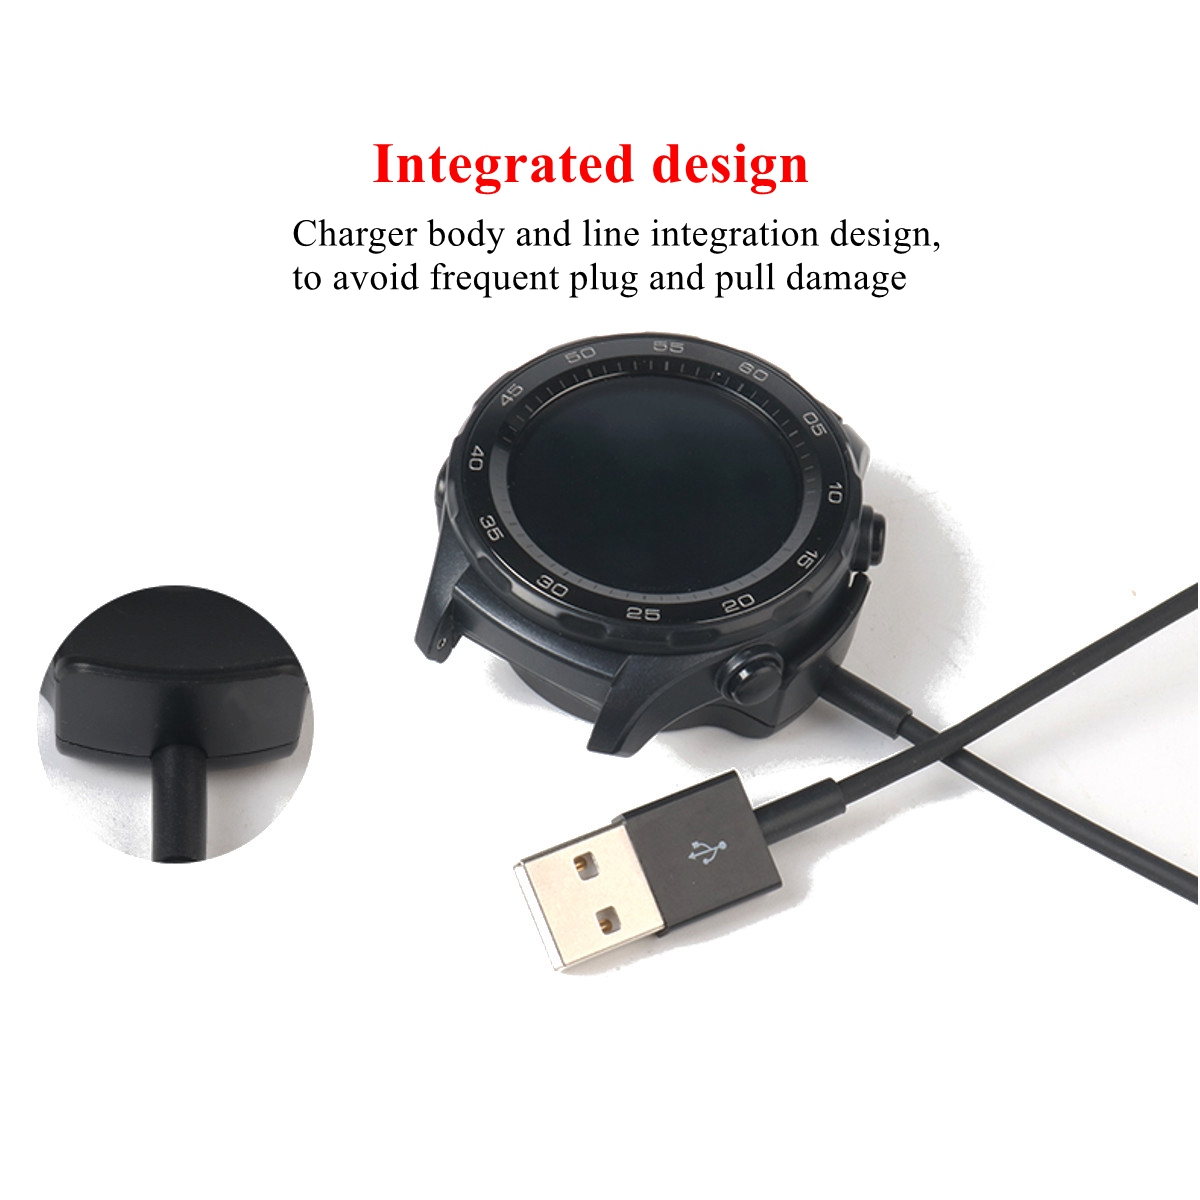 Replacement Portable Desktop Qi Wireless Dock Stations Charger for Huawei Watch 2